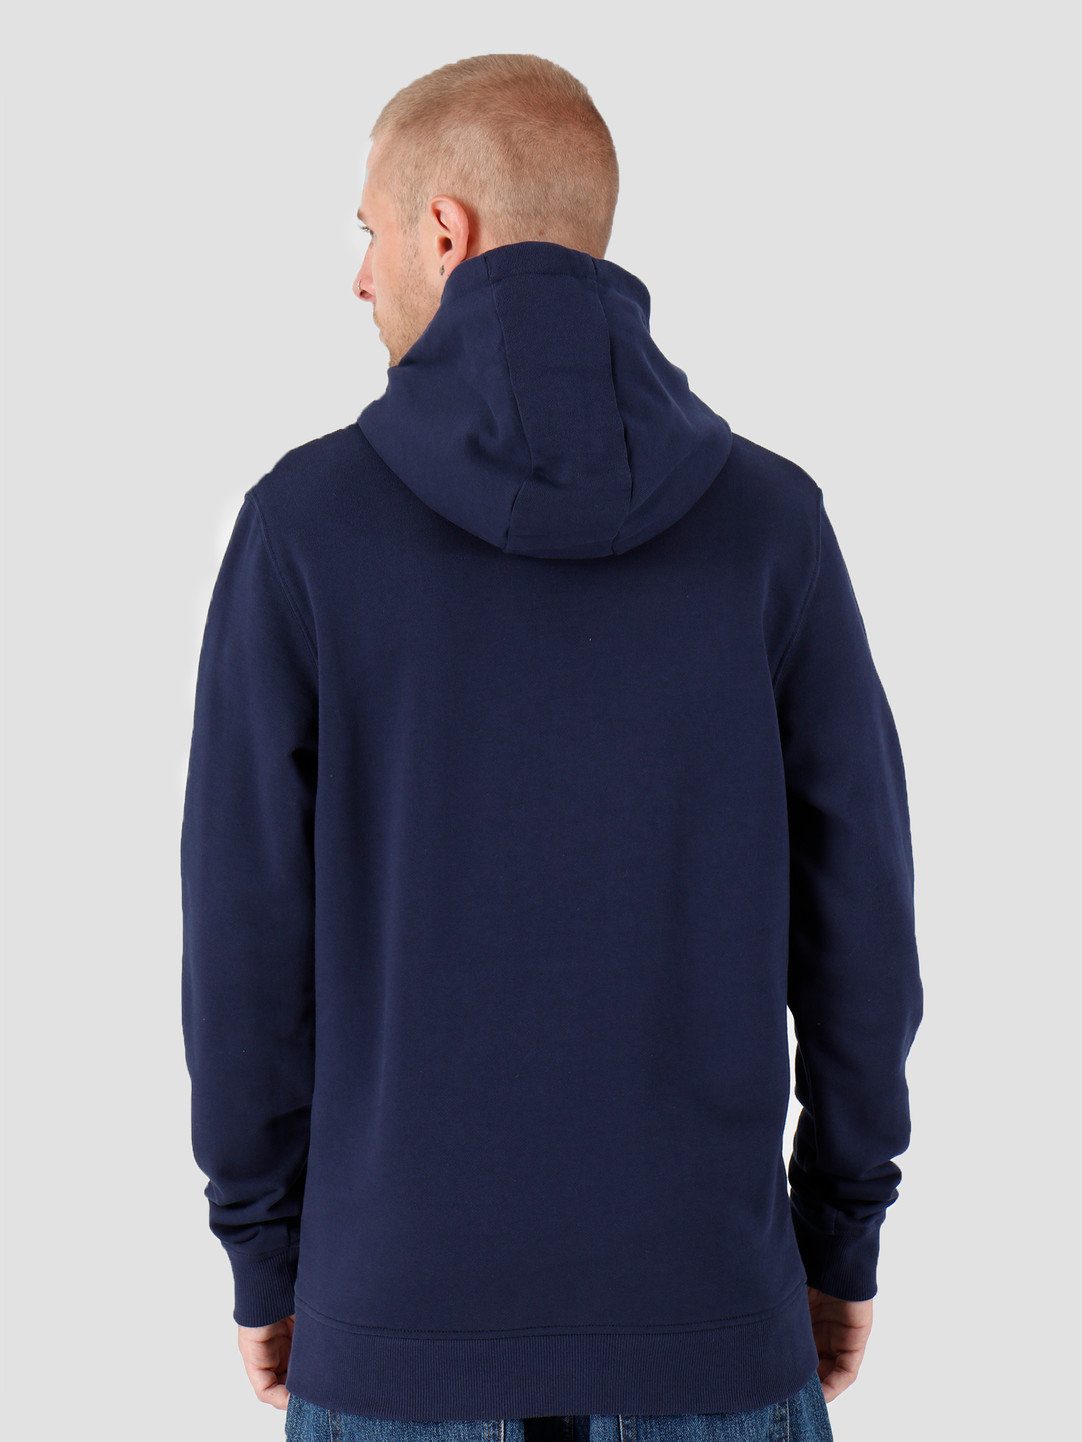 Lyle and Scott Lyle and Scott Pullover Hoodie Z99 Navy ML416VTR